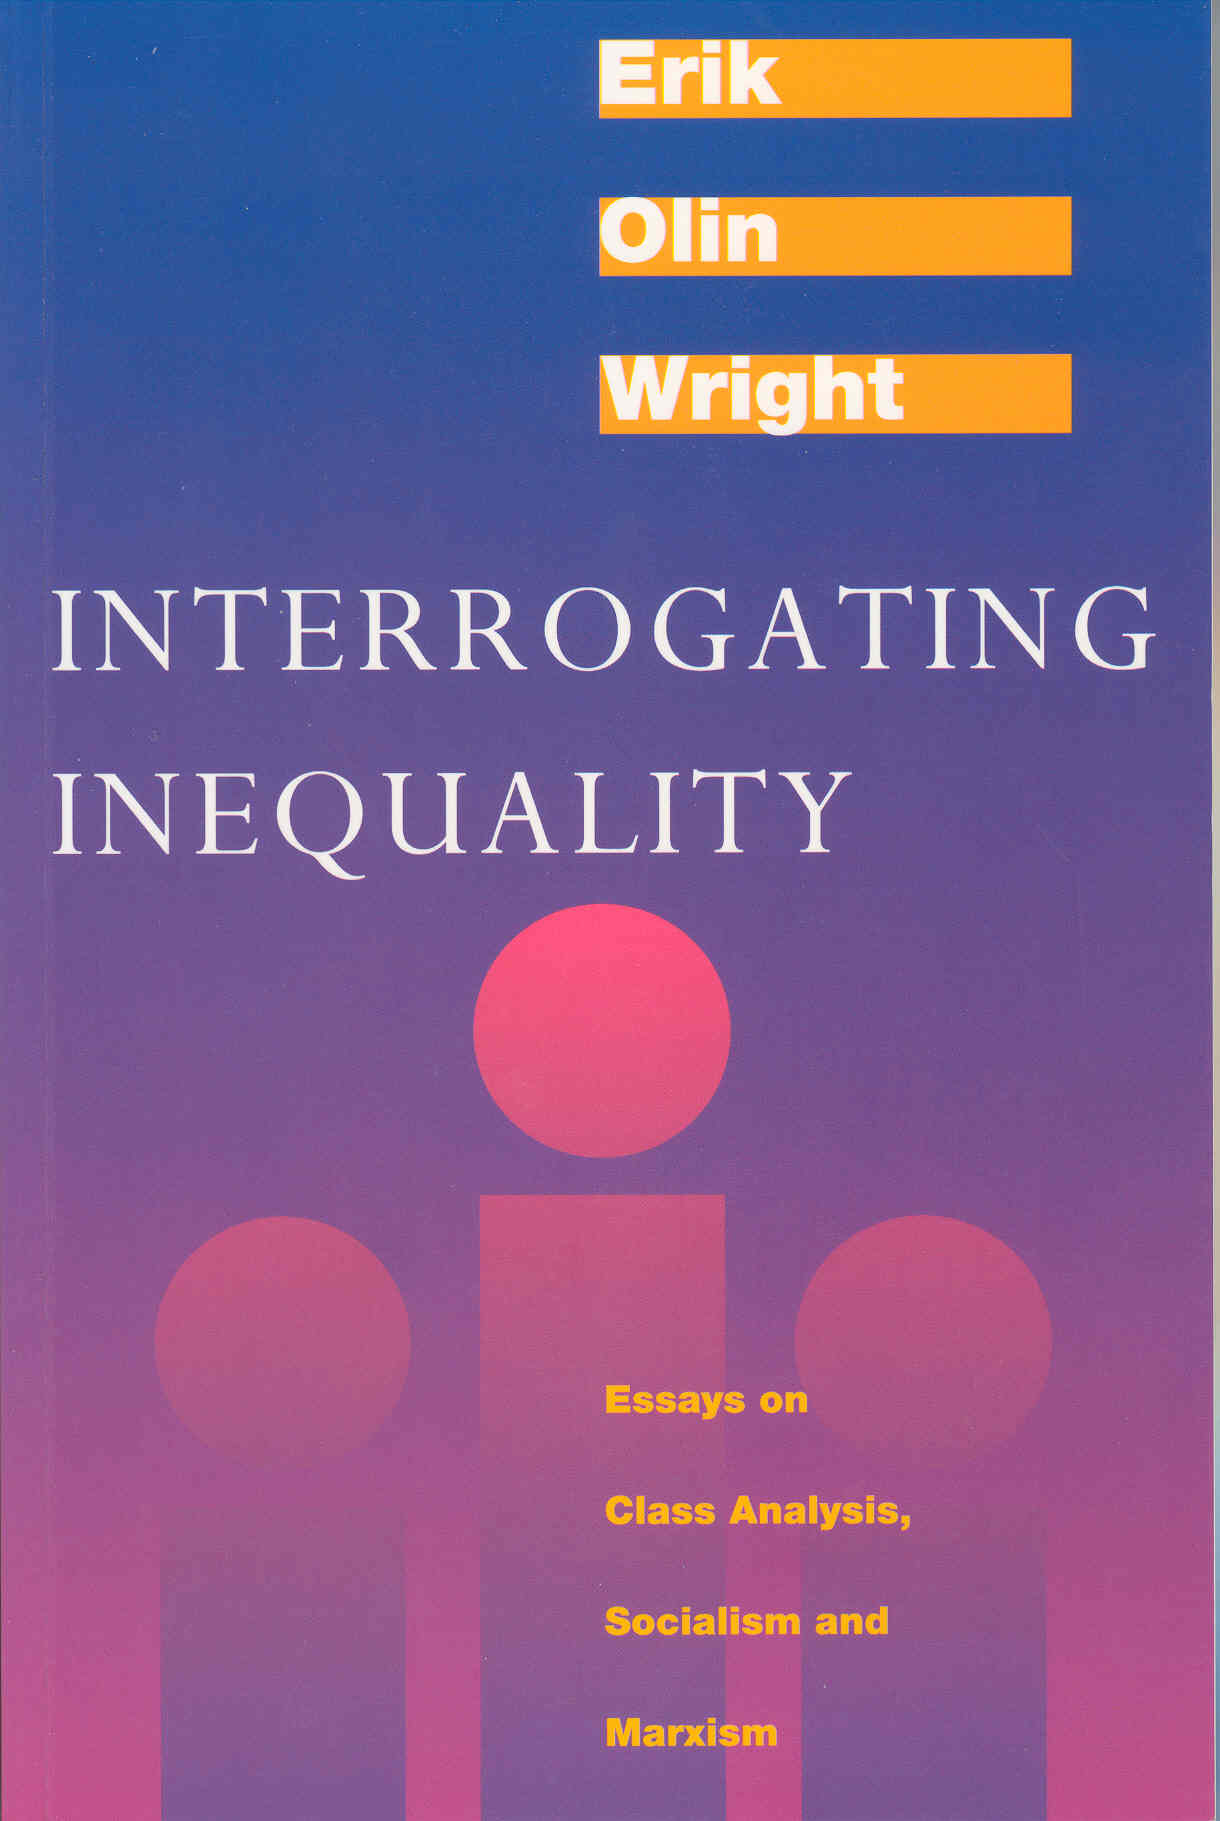 selected published writing interrogating inequality essays on class analysis socialism and marxism